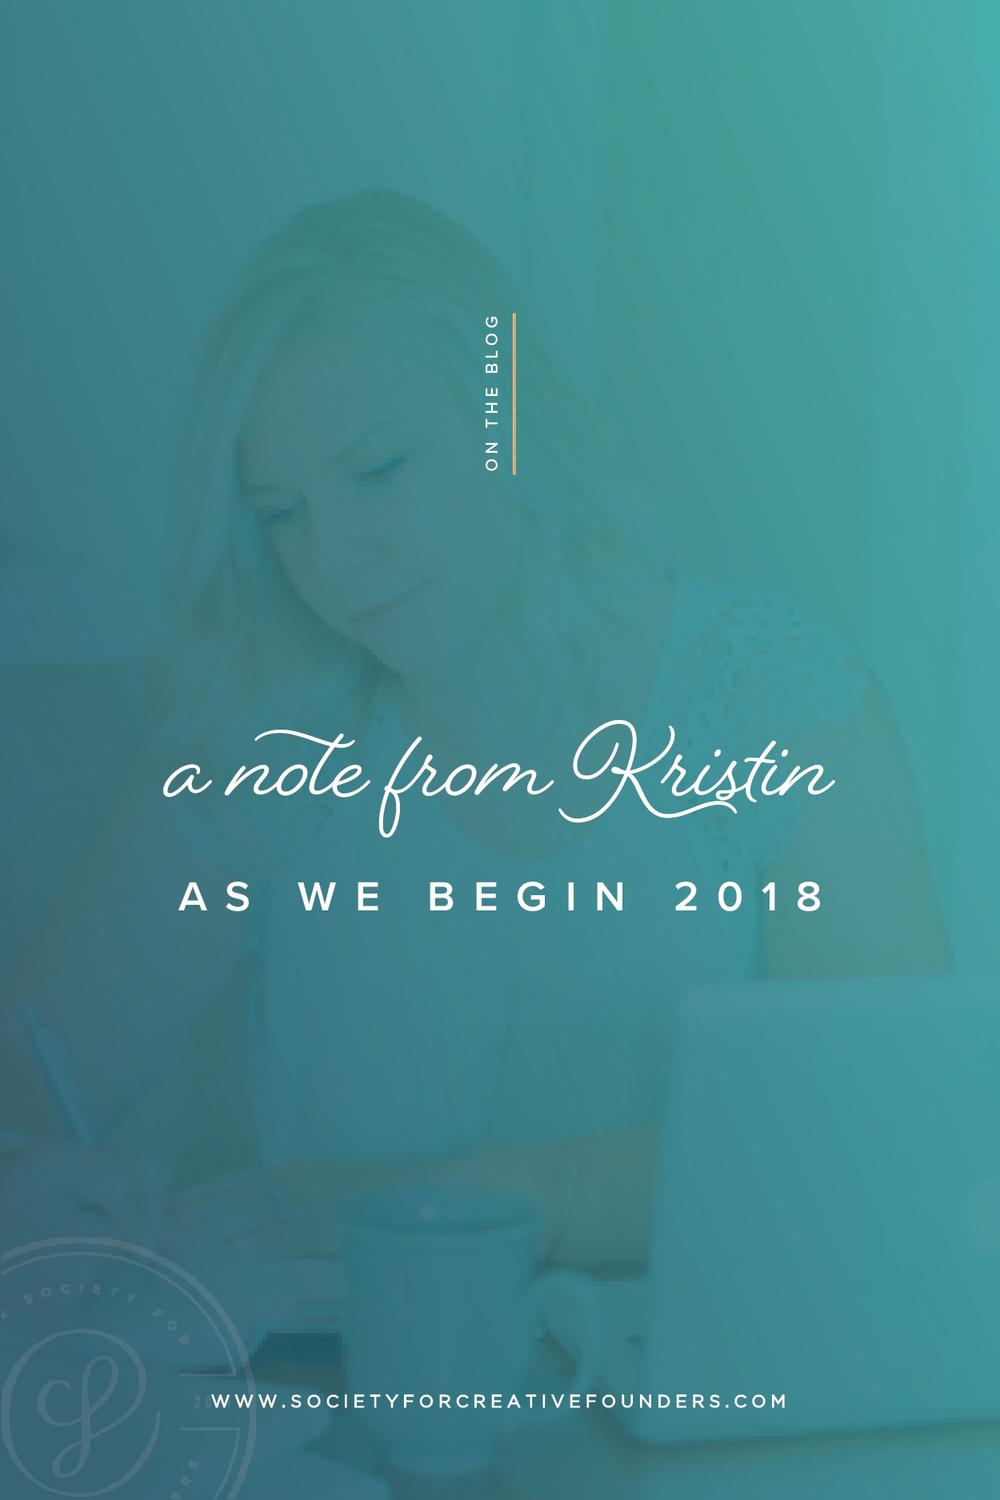 A Note from Kristin as We Begin 2018 - Society for Creative Founders